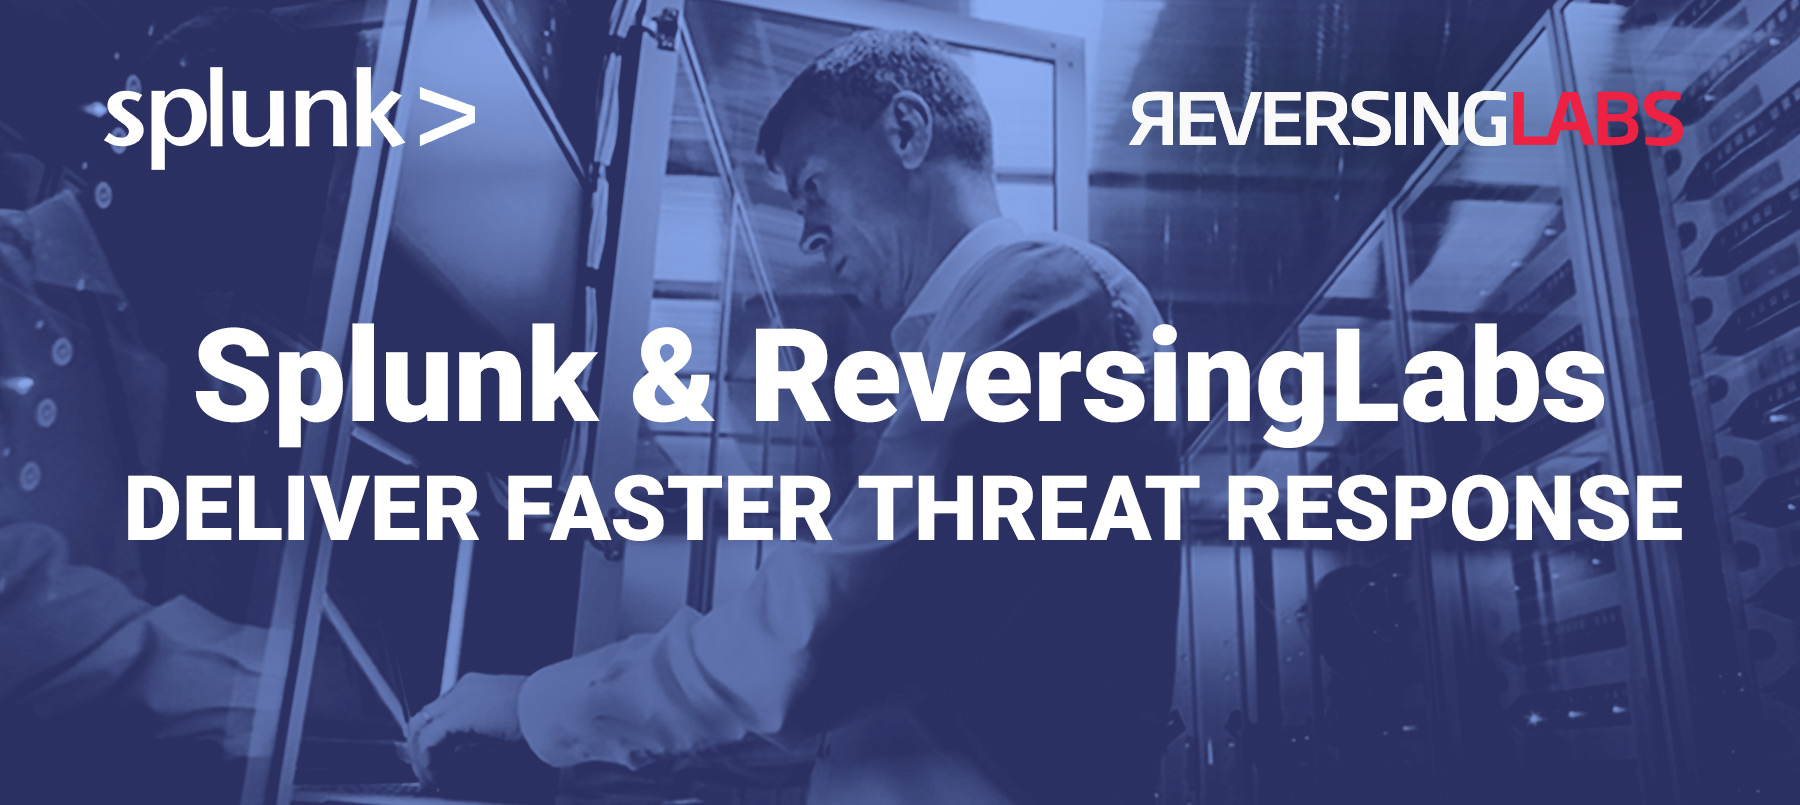 ReversingLabs and Splunk Deliver New Webinar to ISMG readers